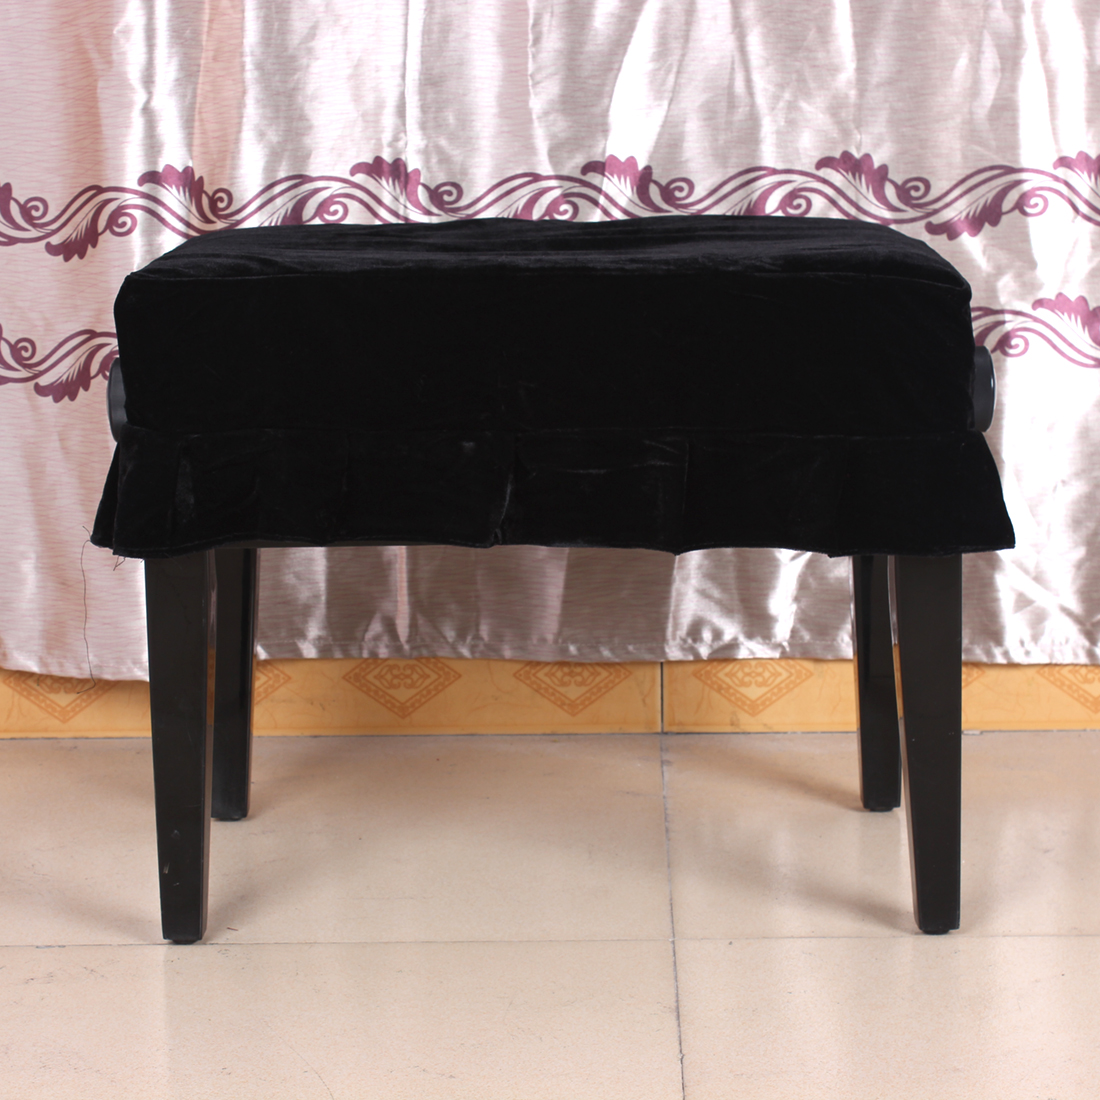 55 x 35cm Pleuche Musical Piano Dust Guard Stool Cover Slipcover for Single Chair